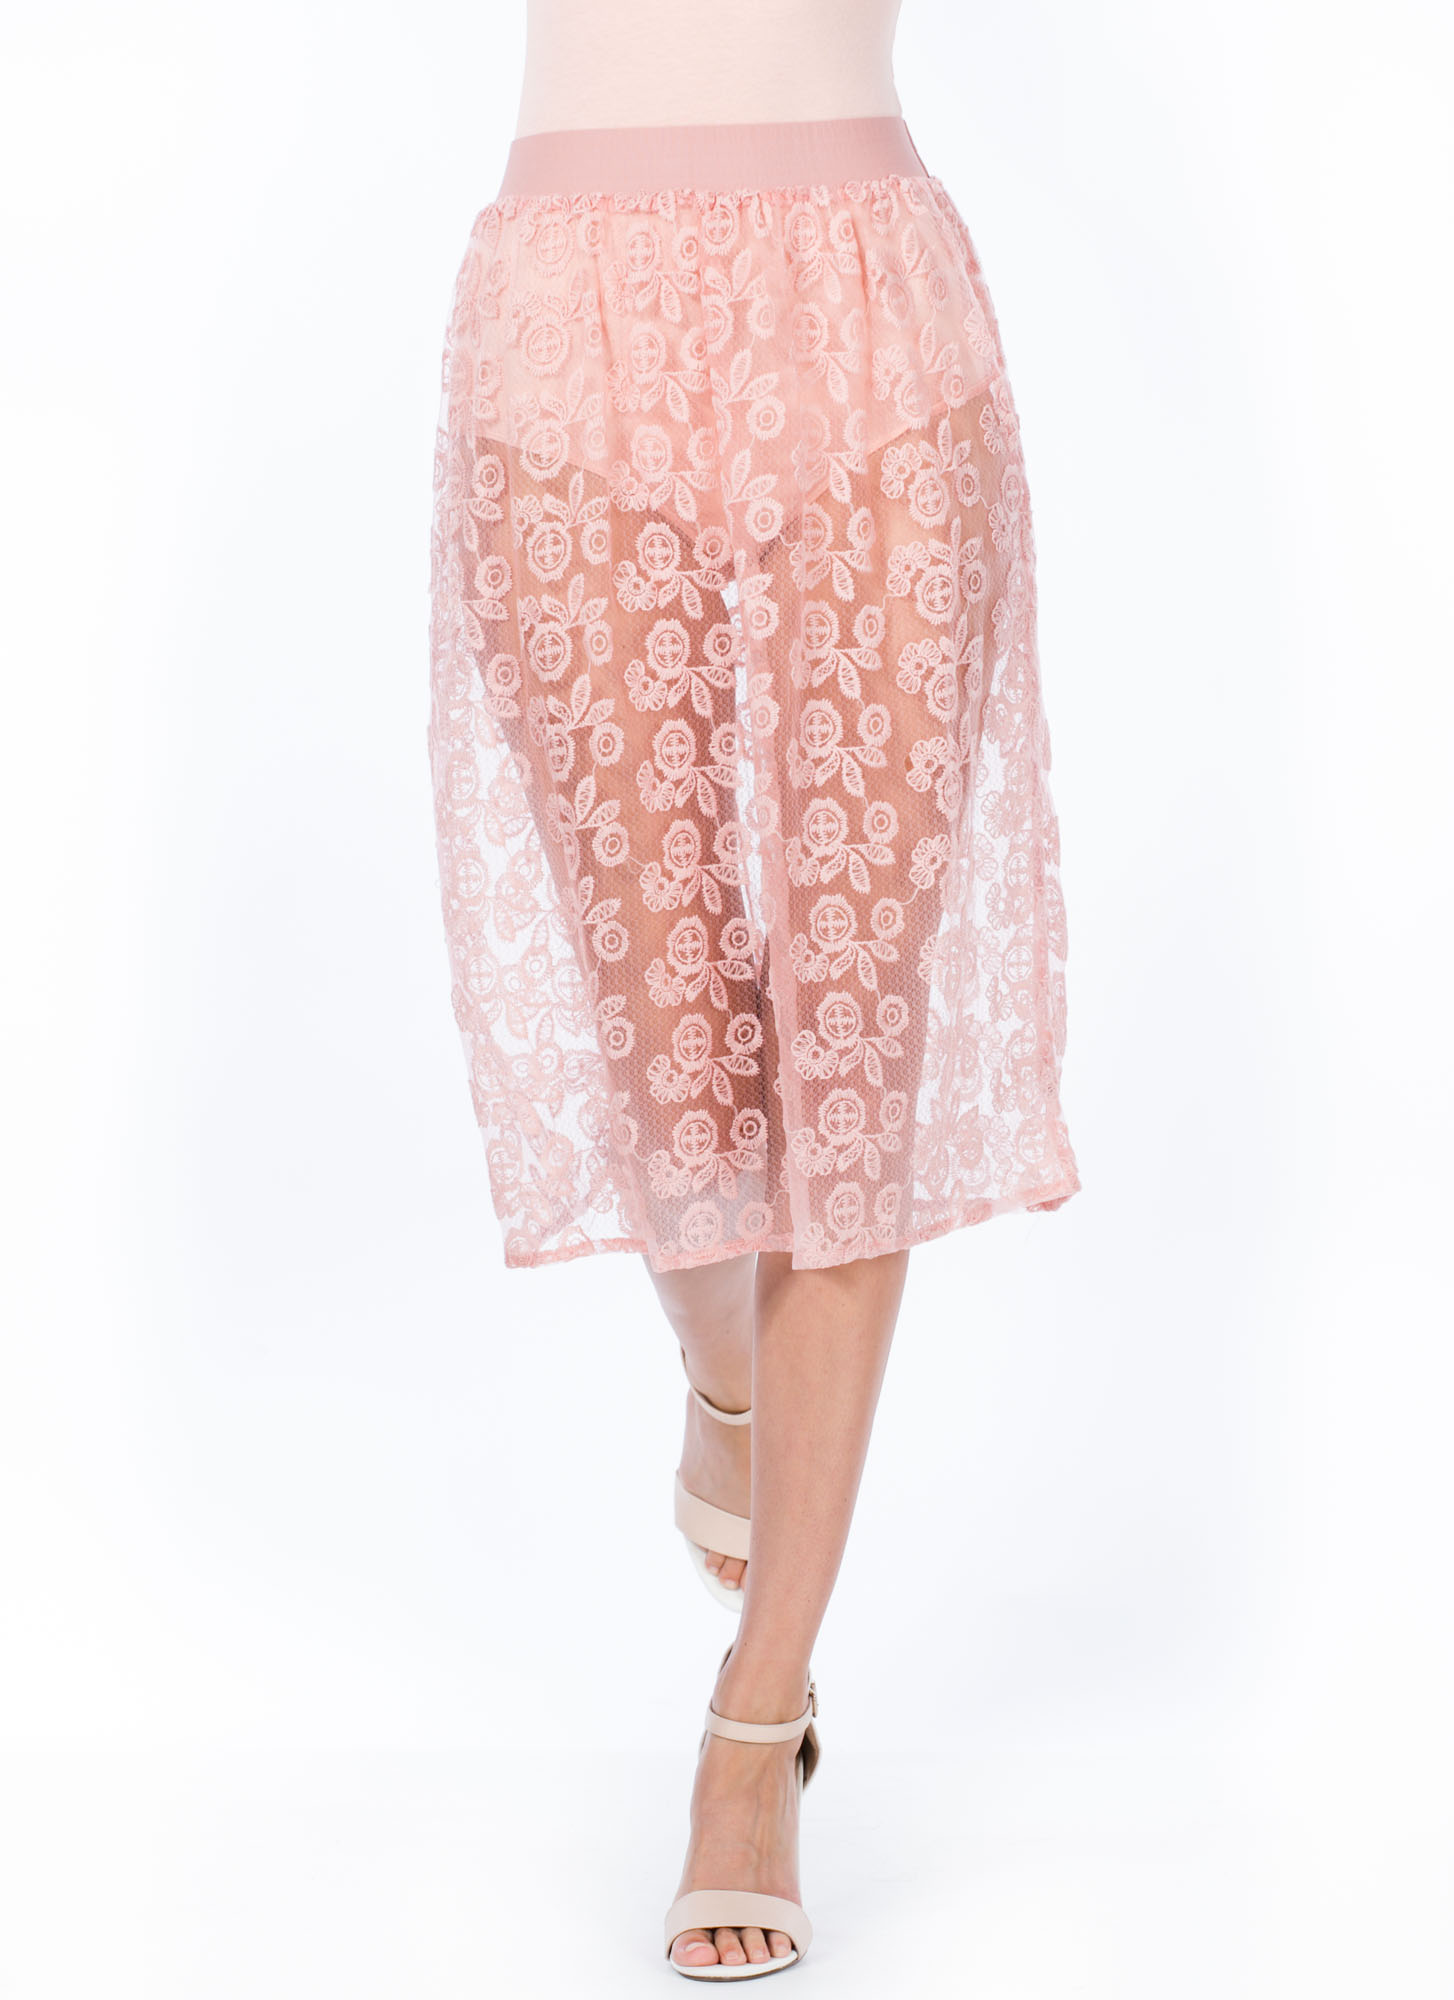 Sheer Floral Stitched Skirt ROSE